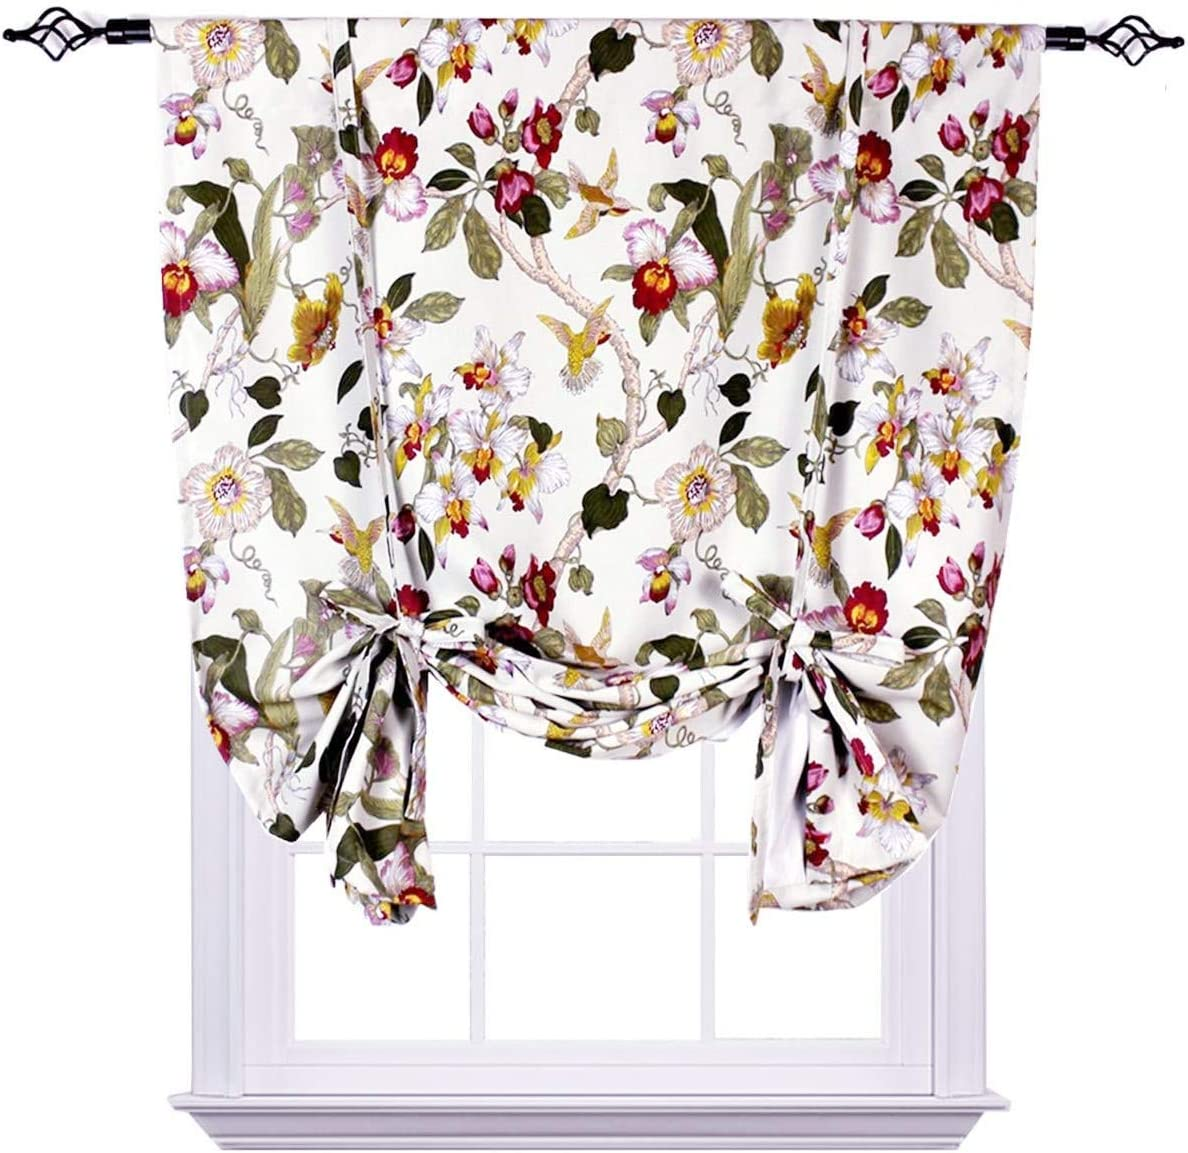 MYRU Flora Tie Up Curtain, Flowers Birds Retro Room Darkening Blackout Curtain, Adjustable Balloon Curtain for Kitchen Room Bedroom 1 Panel 42 W x 63 L